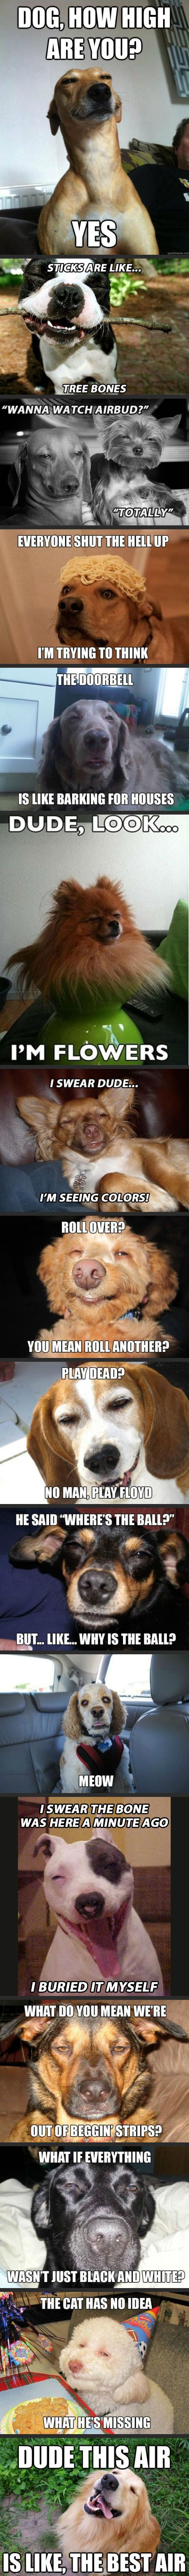 """Hahahahahaha omg. """"Roll over? You mean roll another?"""" Looks just like a blonde lulu!!!!"""